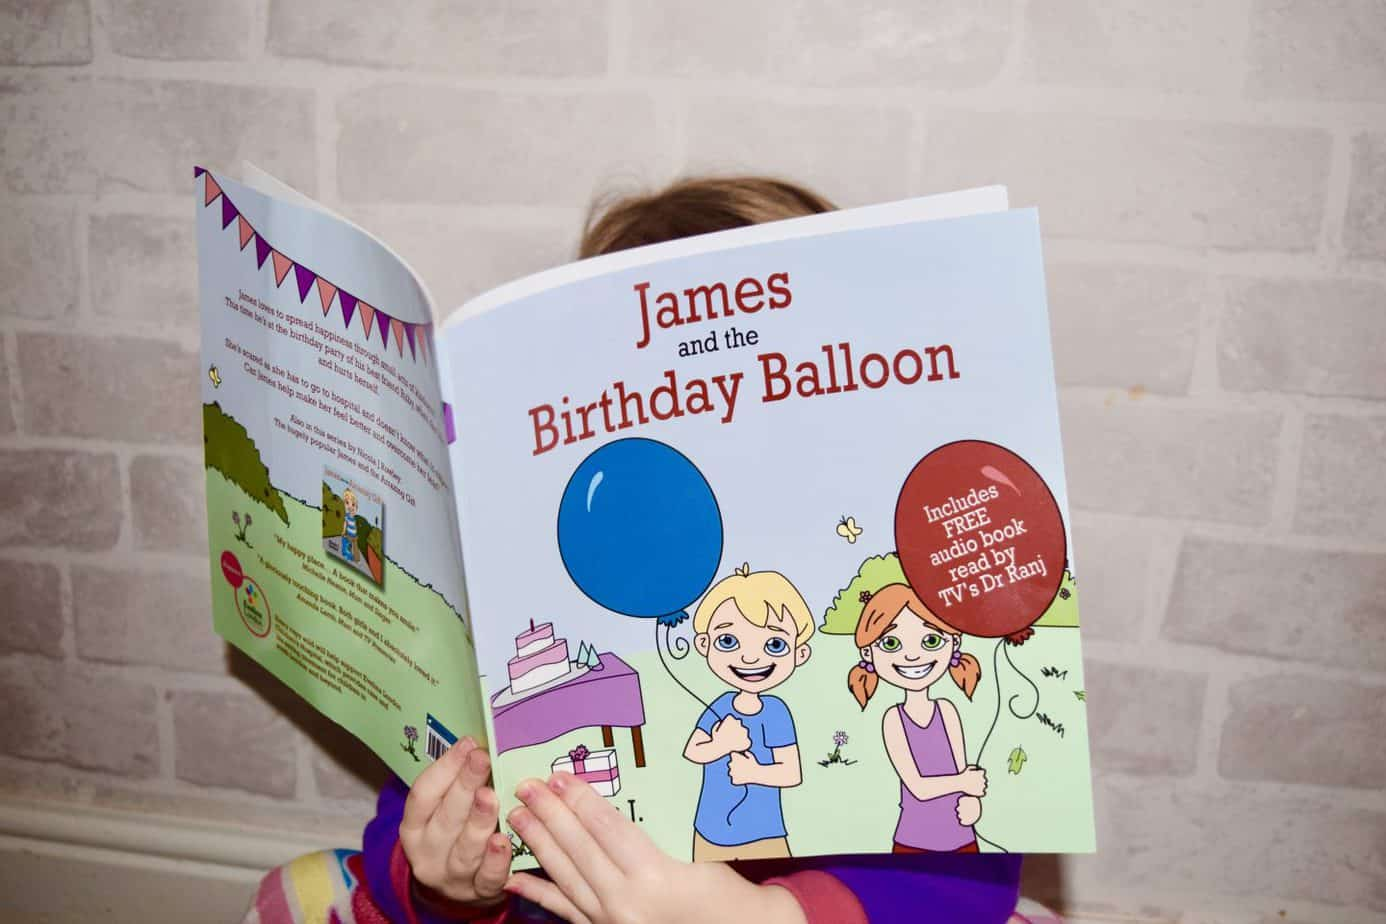 Willow reading the book James and the Birthday Balloon